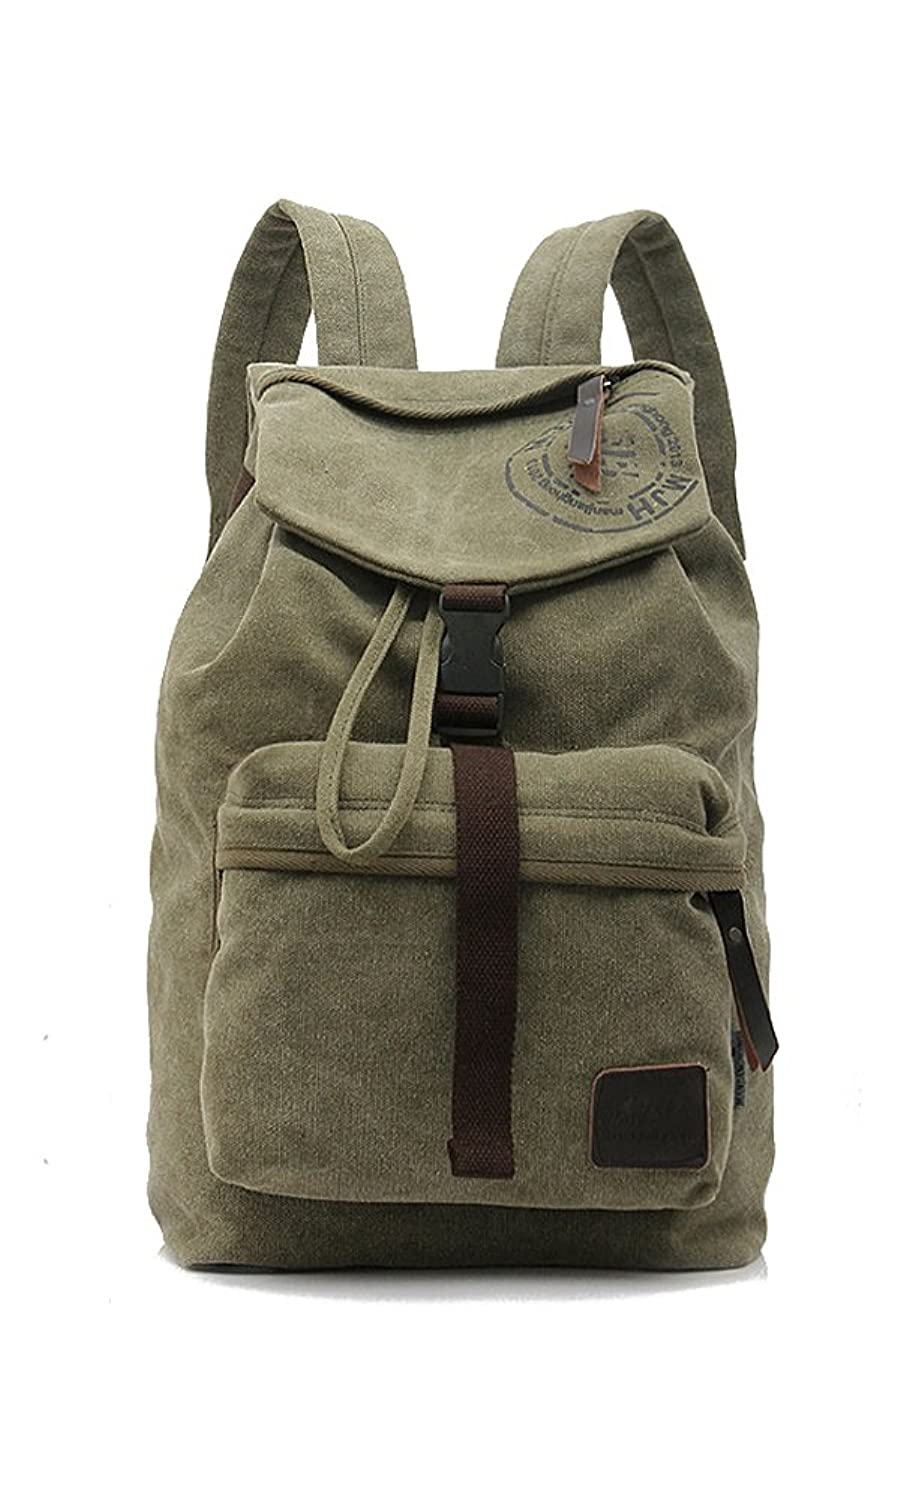 Ginsio Unisex Outdoor Sports Casual Canvas Crossbody Sling Mountaineer Bike Riding Travel Pack Students Backpacks Shoulders Bag